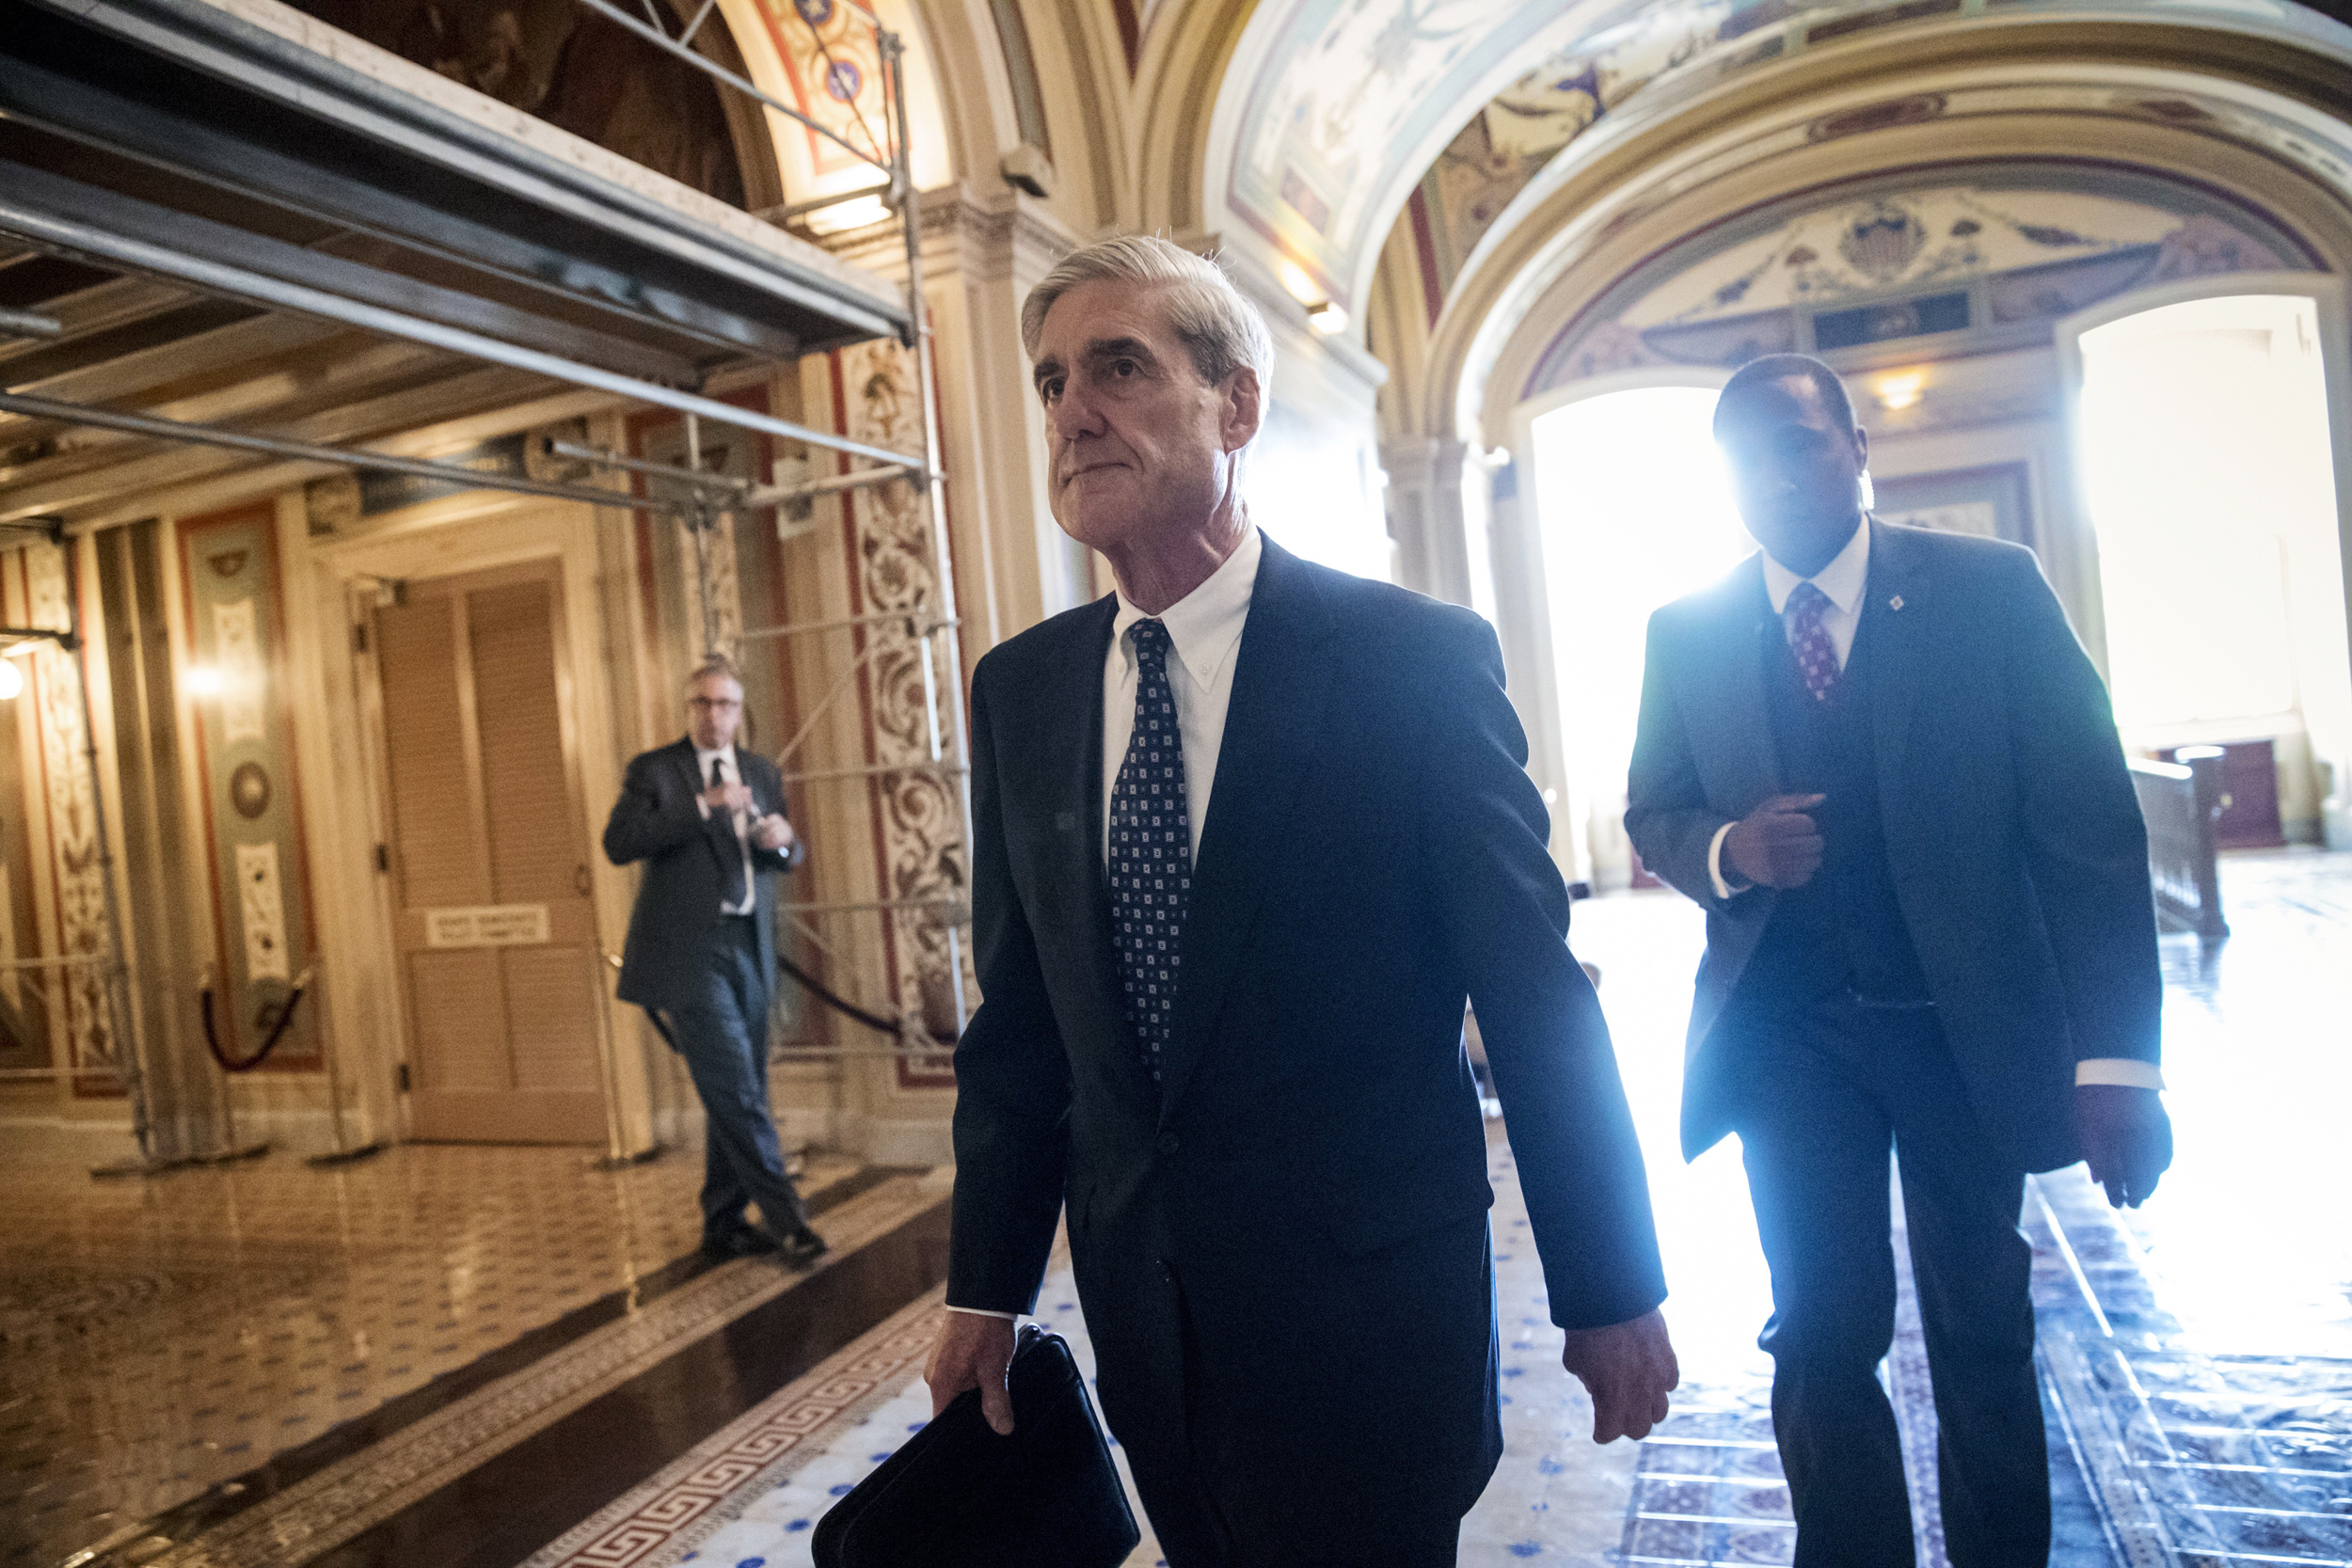 No Mueller report next week, says Justice Department official